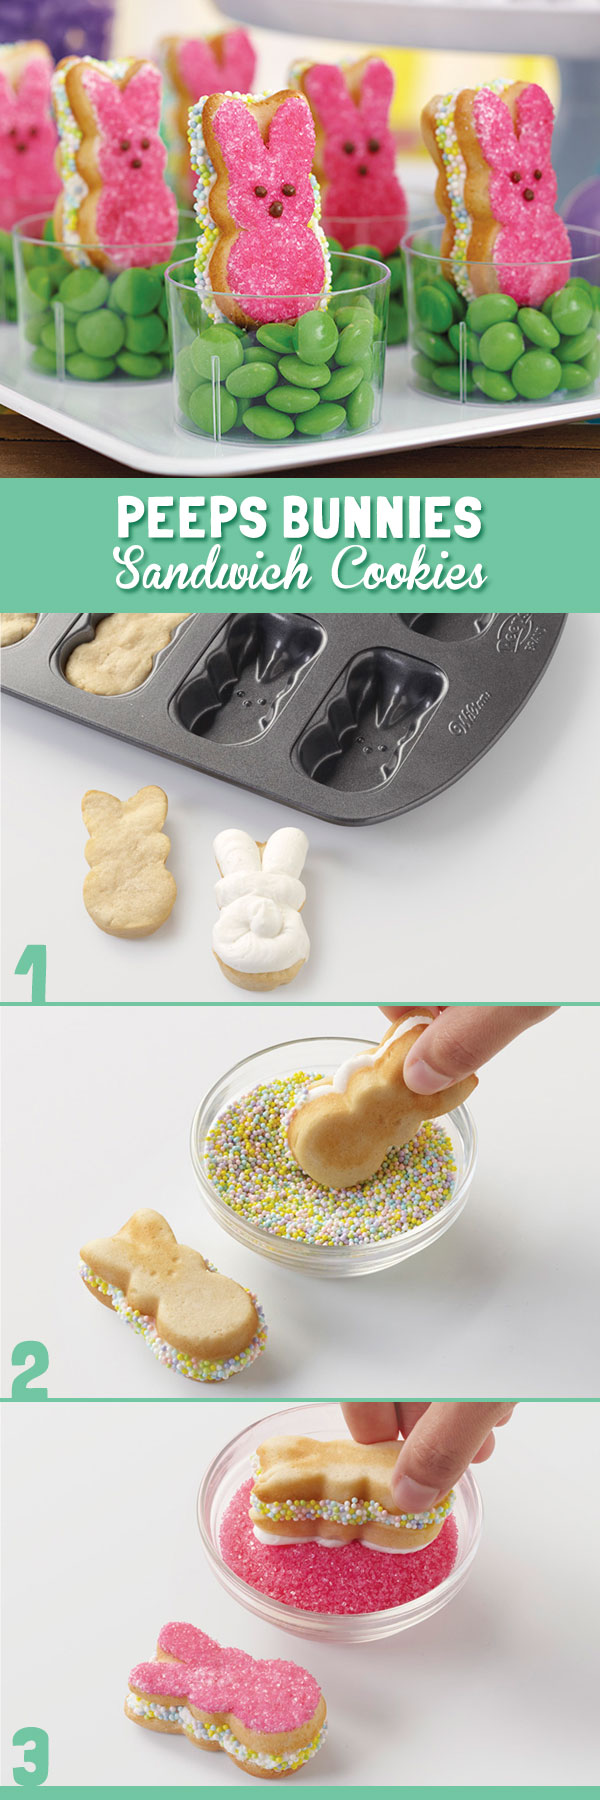 This Pan Makes It Easy To Make Peeps 174 Shaped Sandwich